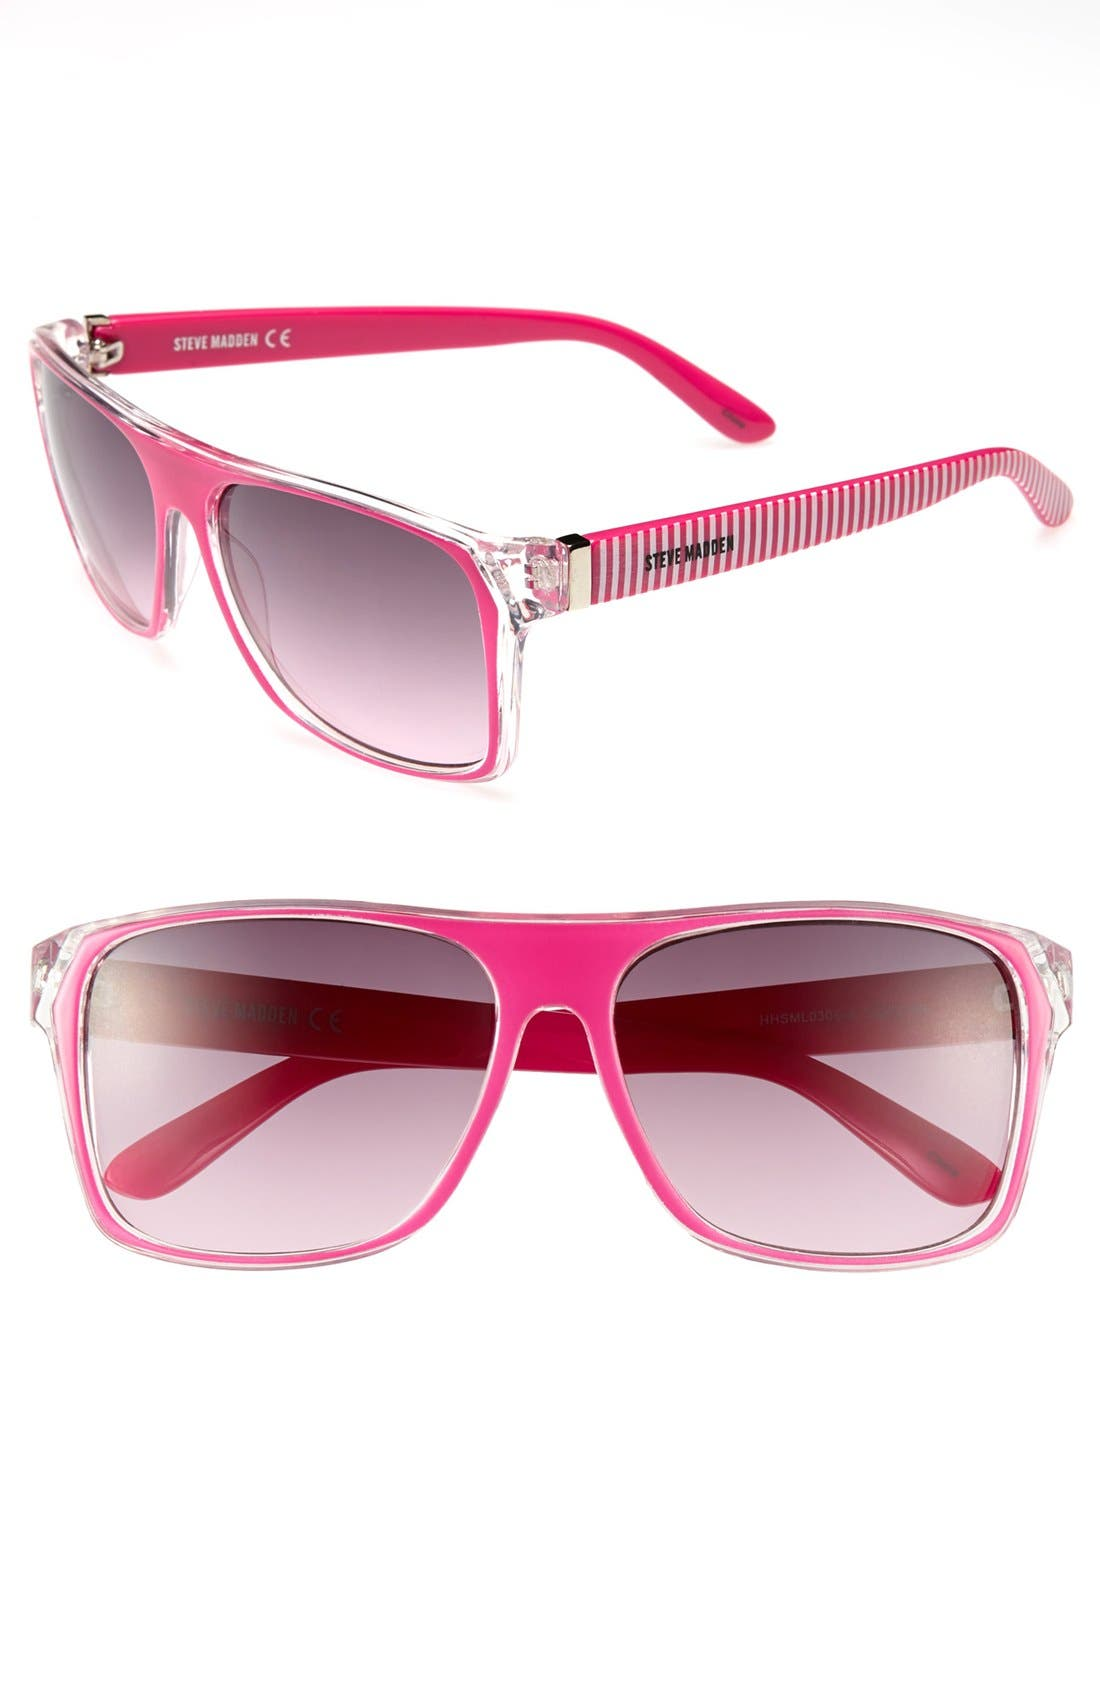 Main Image - Steve Madden 60mm Retro Sunglasses